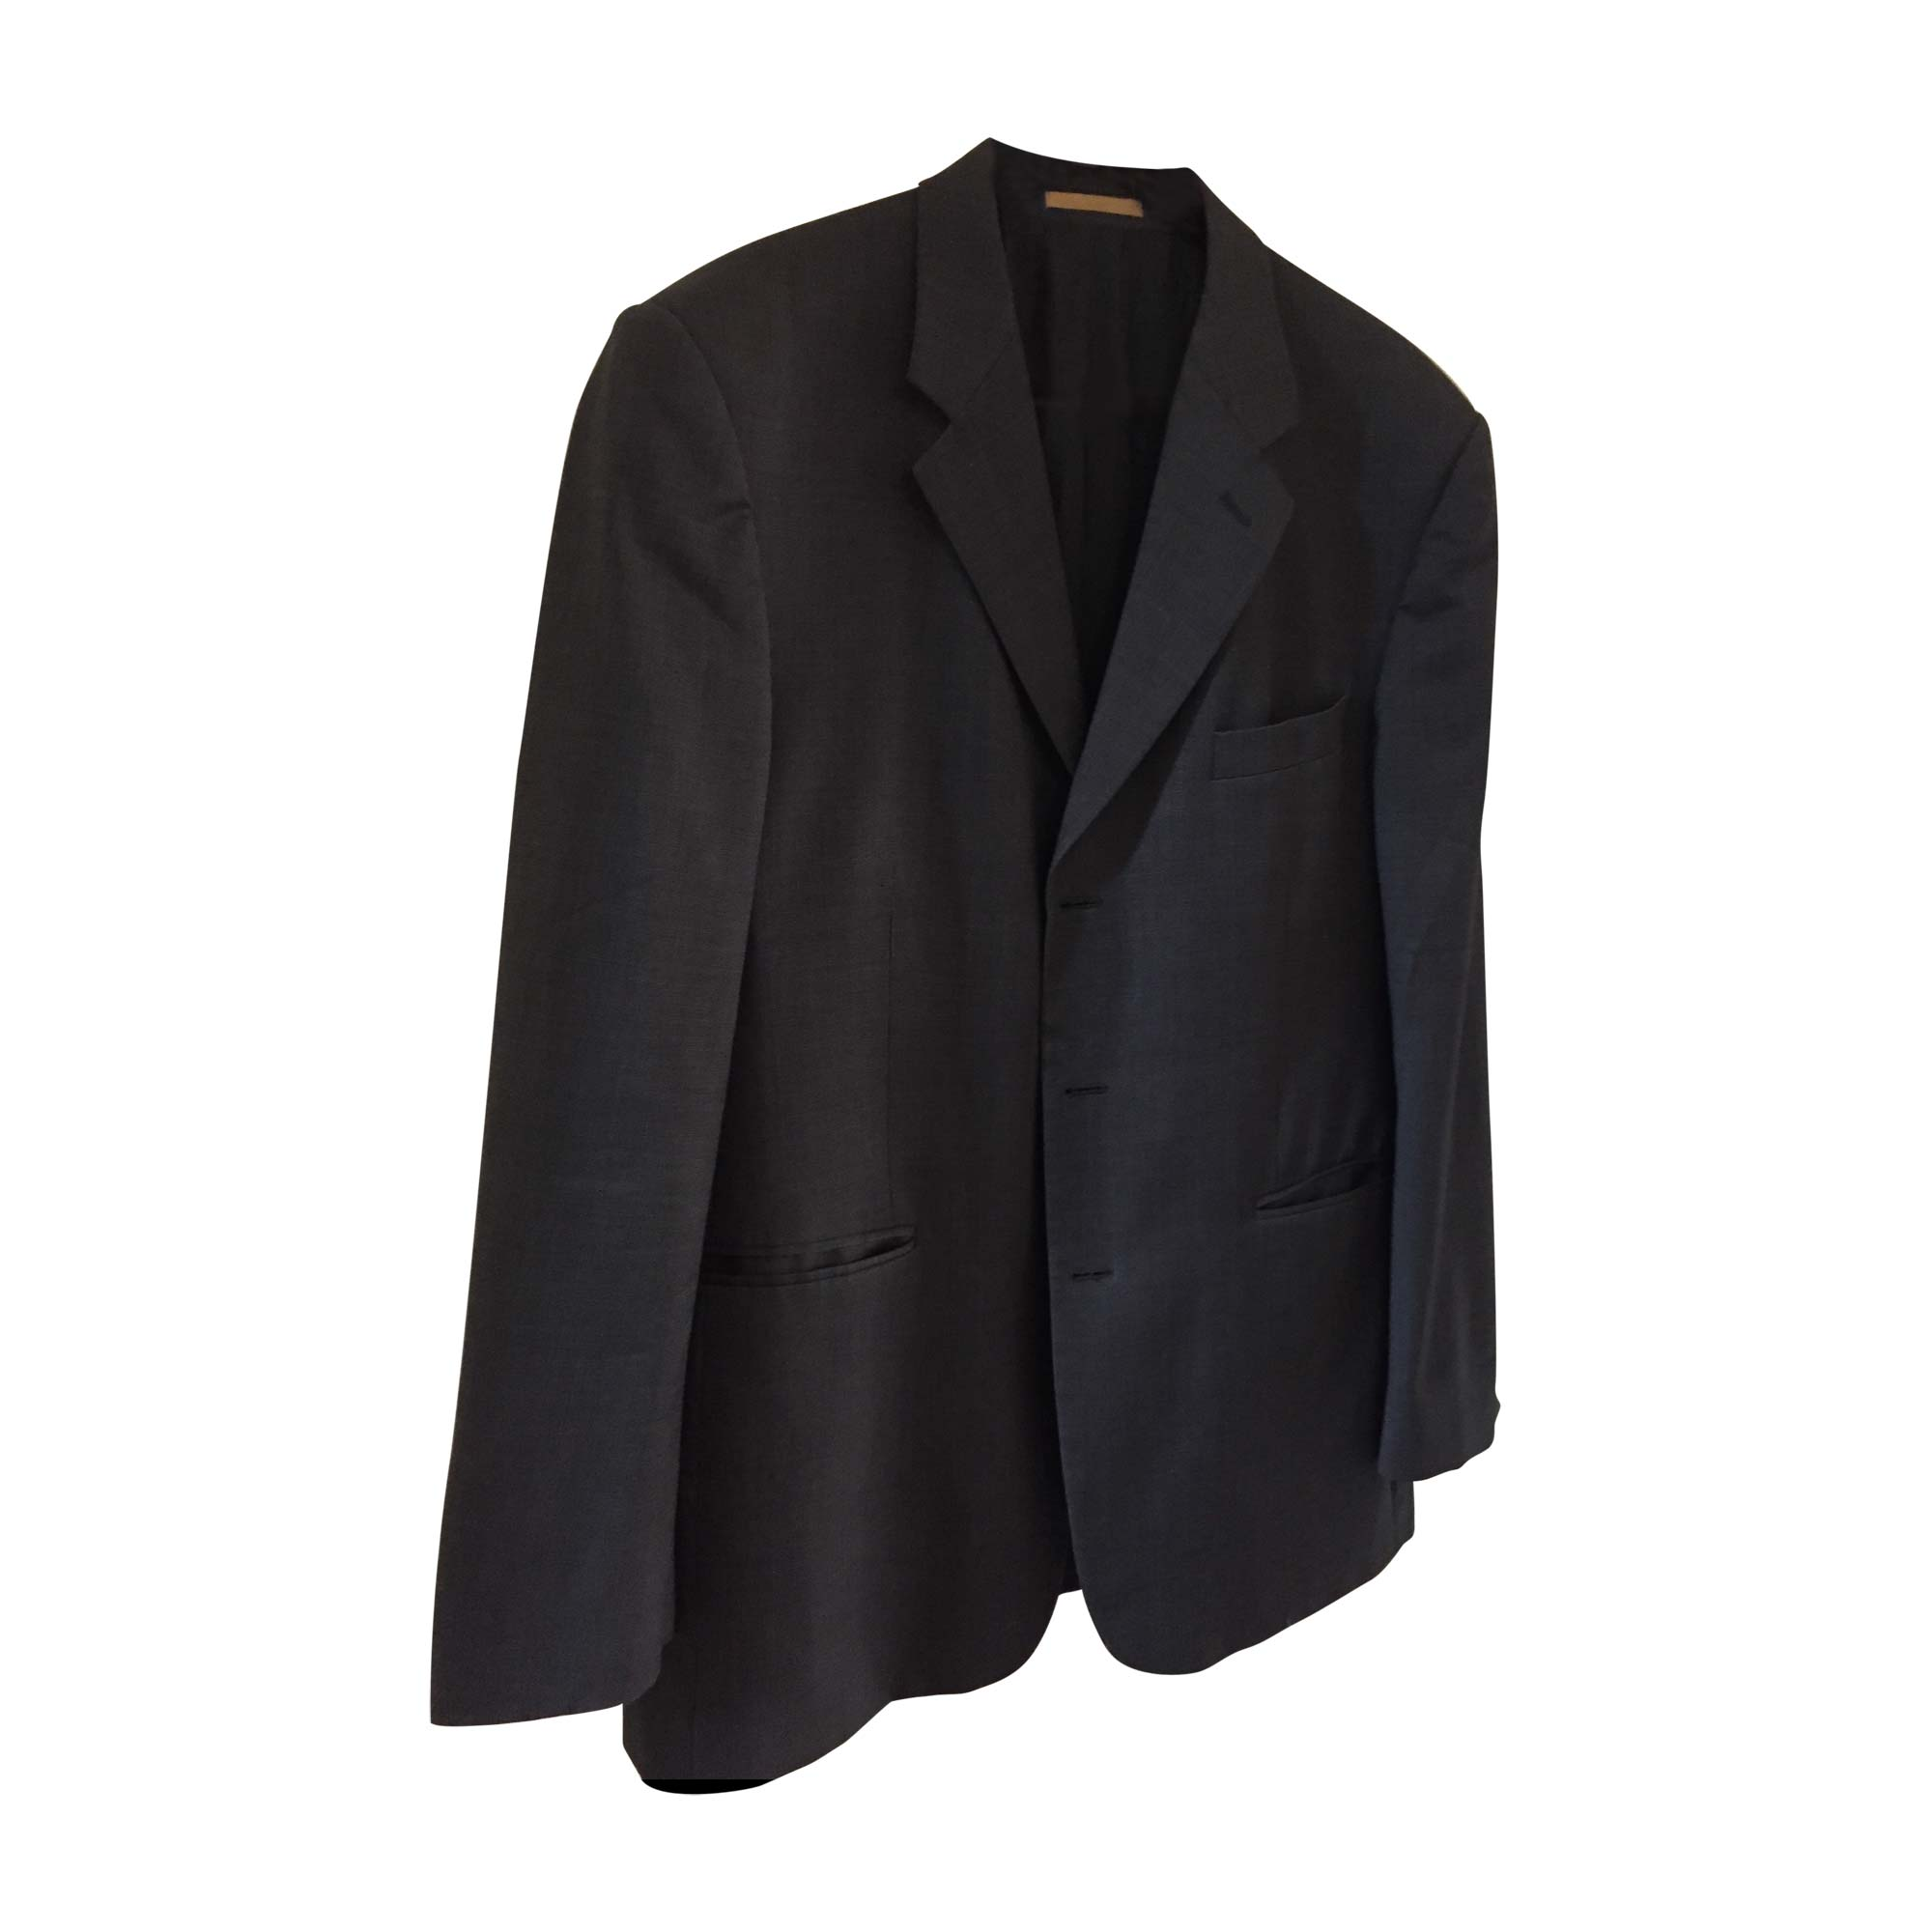 Veste de costume YVES SAINT LAURENT Gris, anthracite